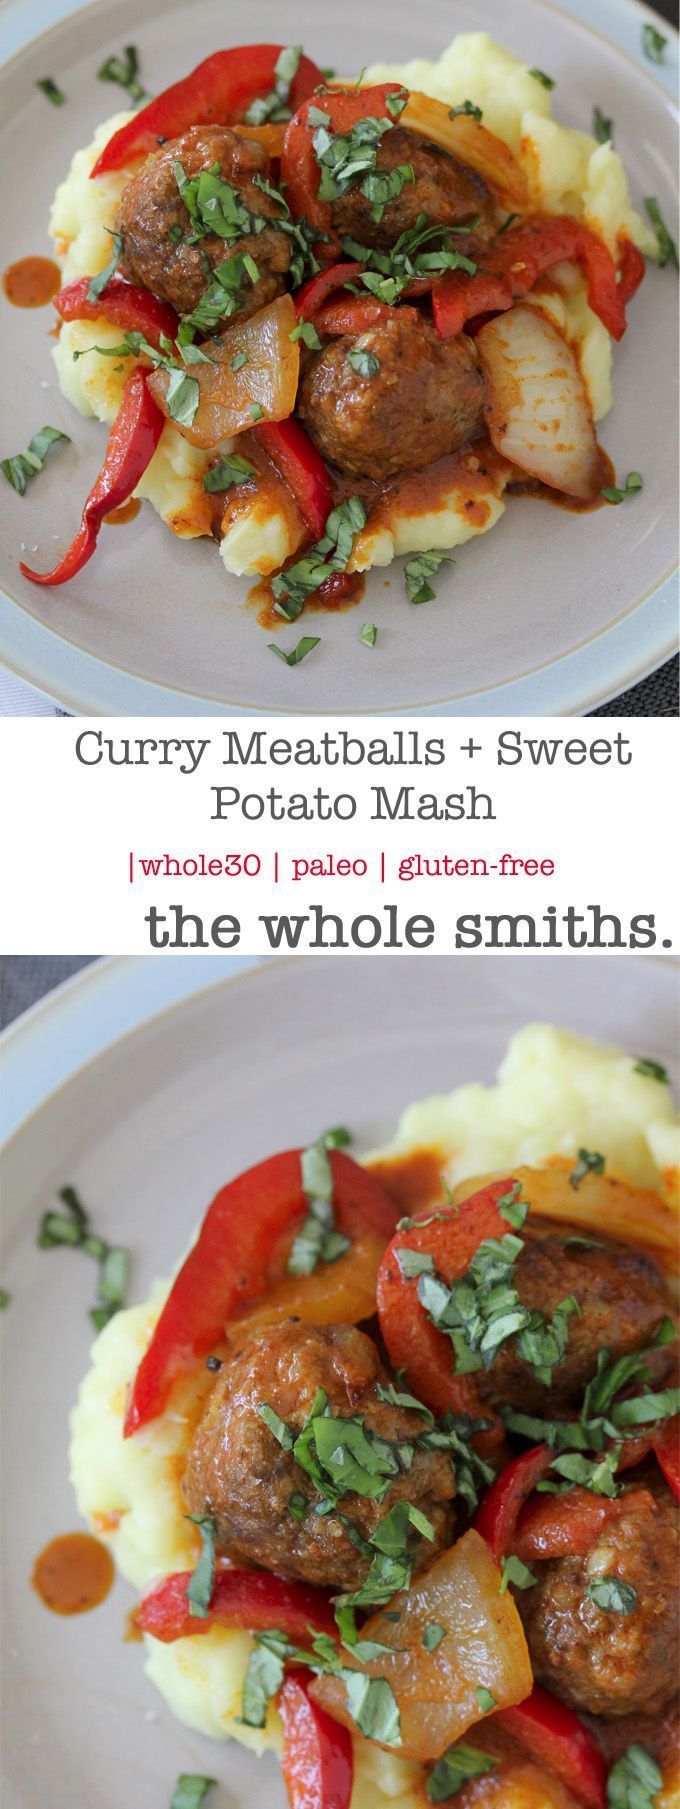 Whole30 compliant Curry Meatballs + Sweet Potato Mash. A quick recipe that perfect for busy weeknights and great for leftovers! Paleo and gluten-free.